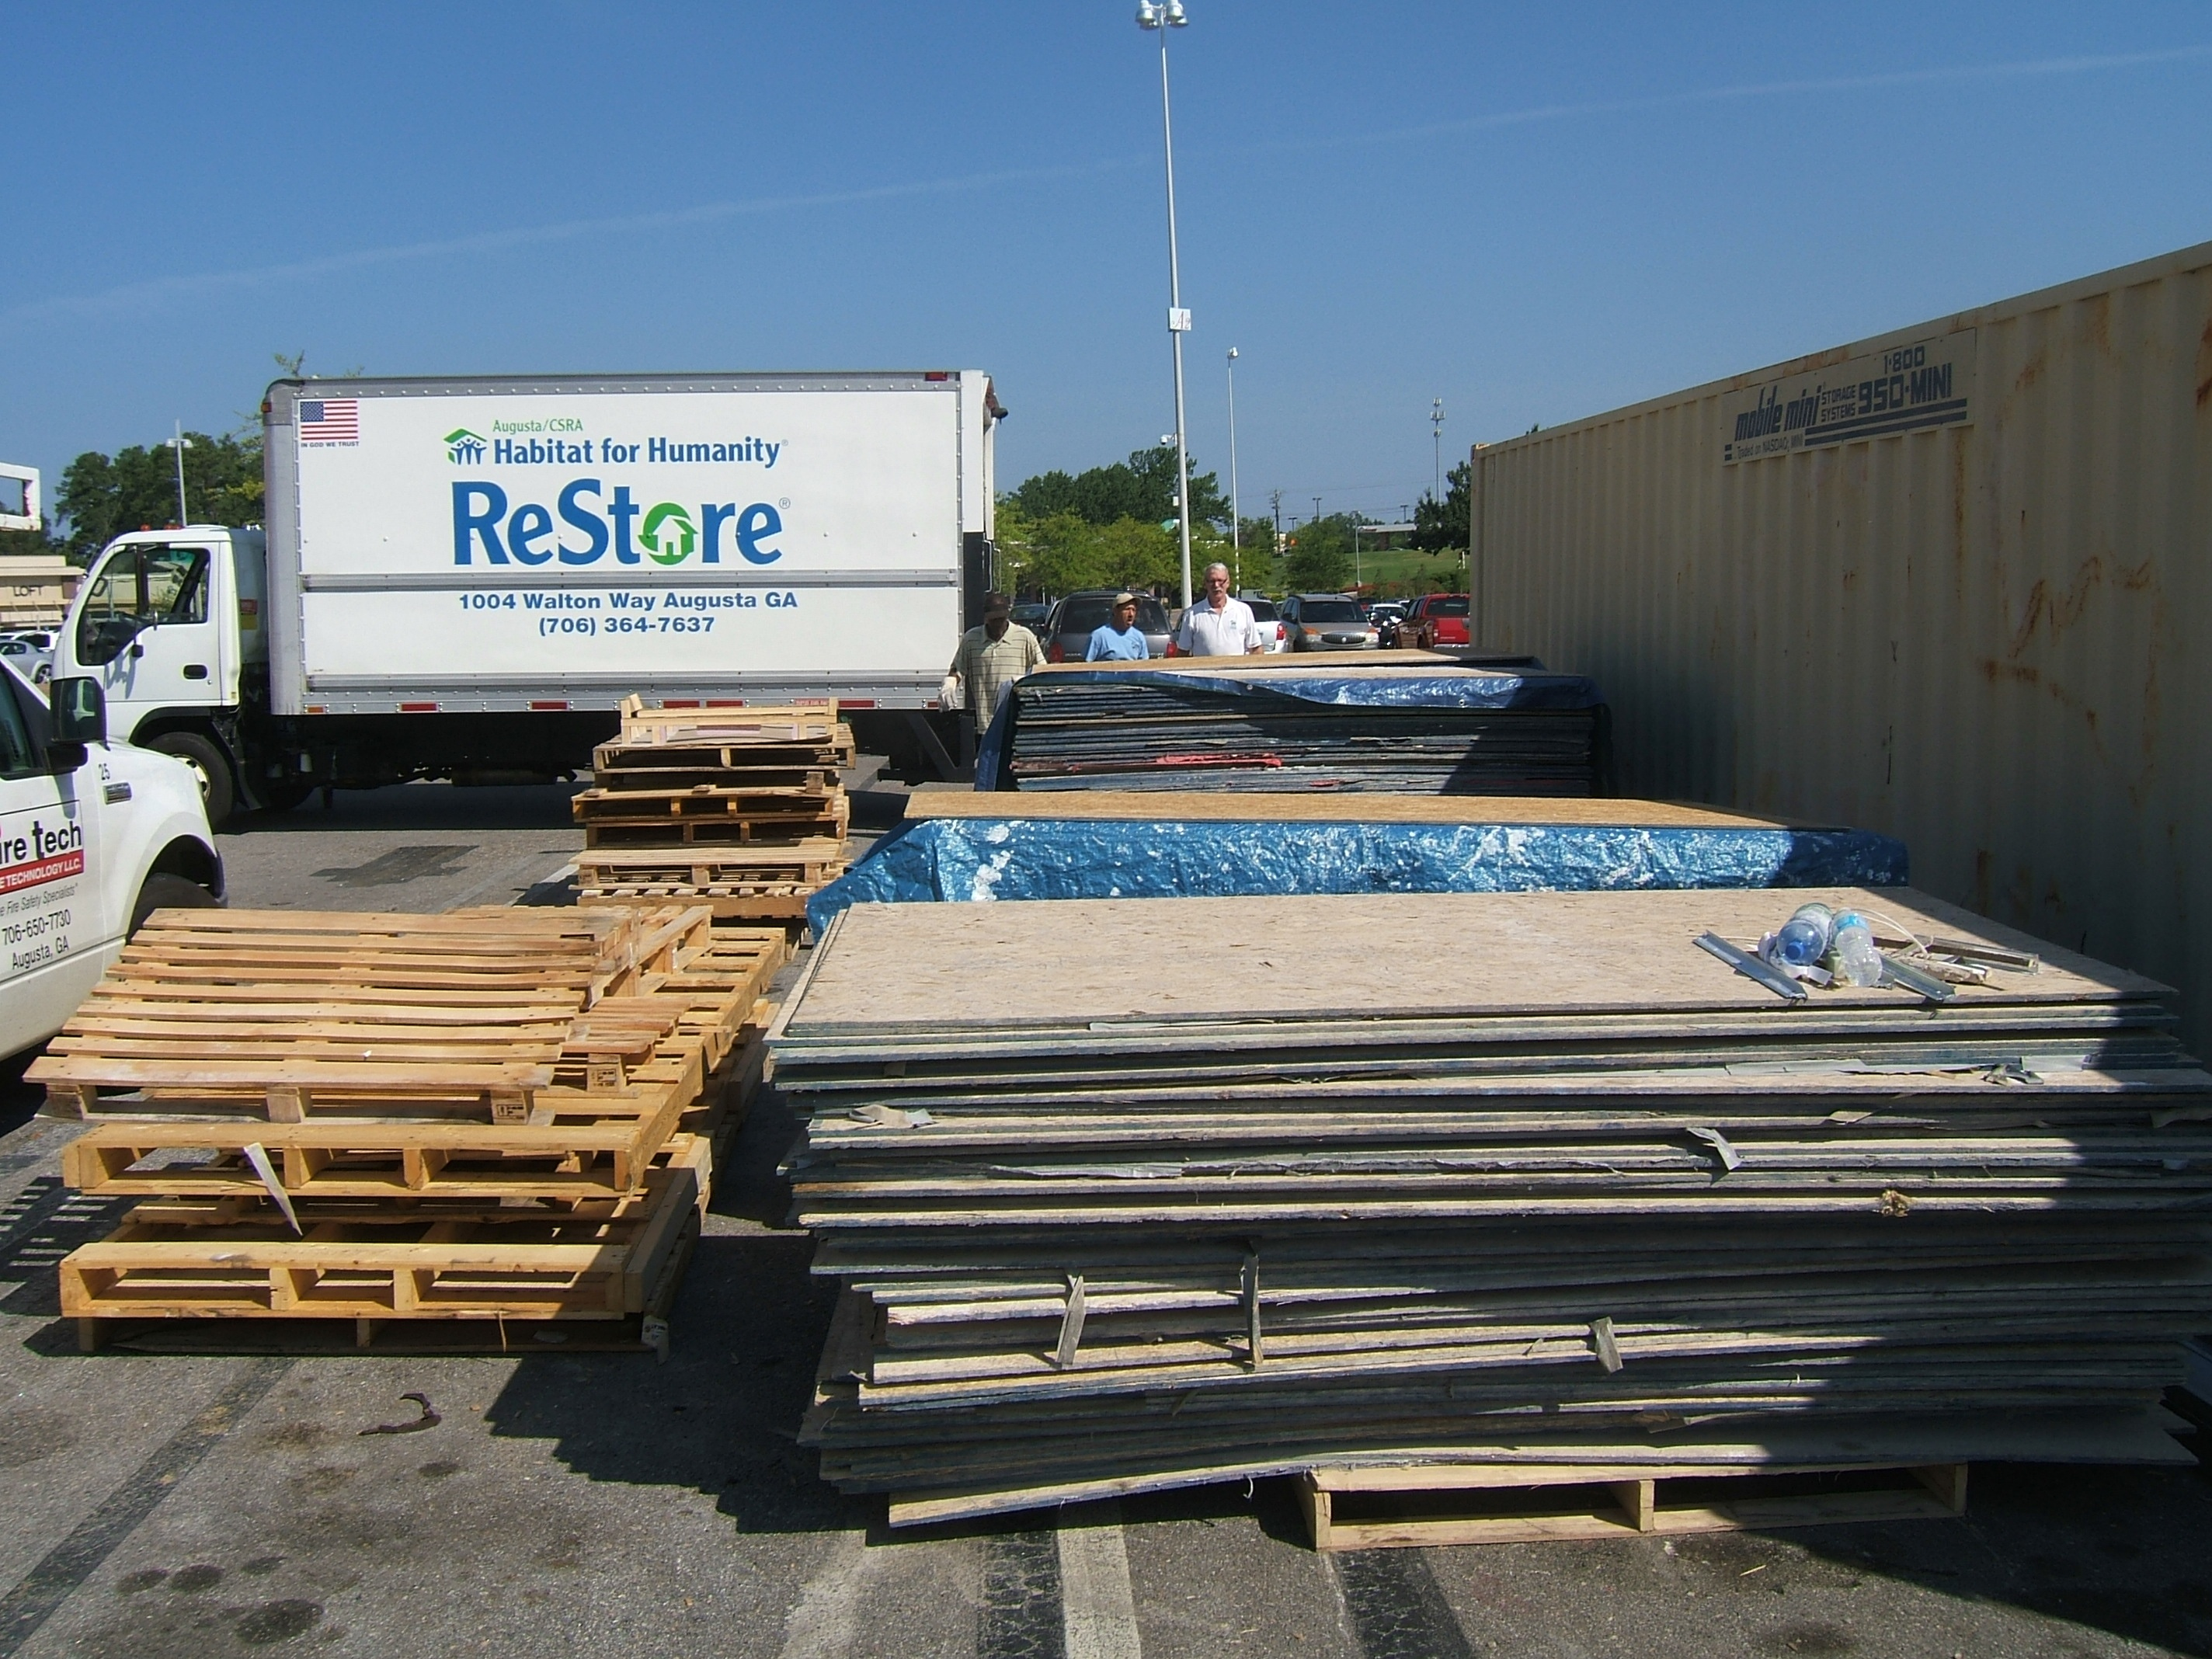 JMW Tile donating materials to be used